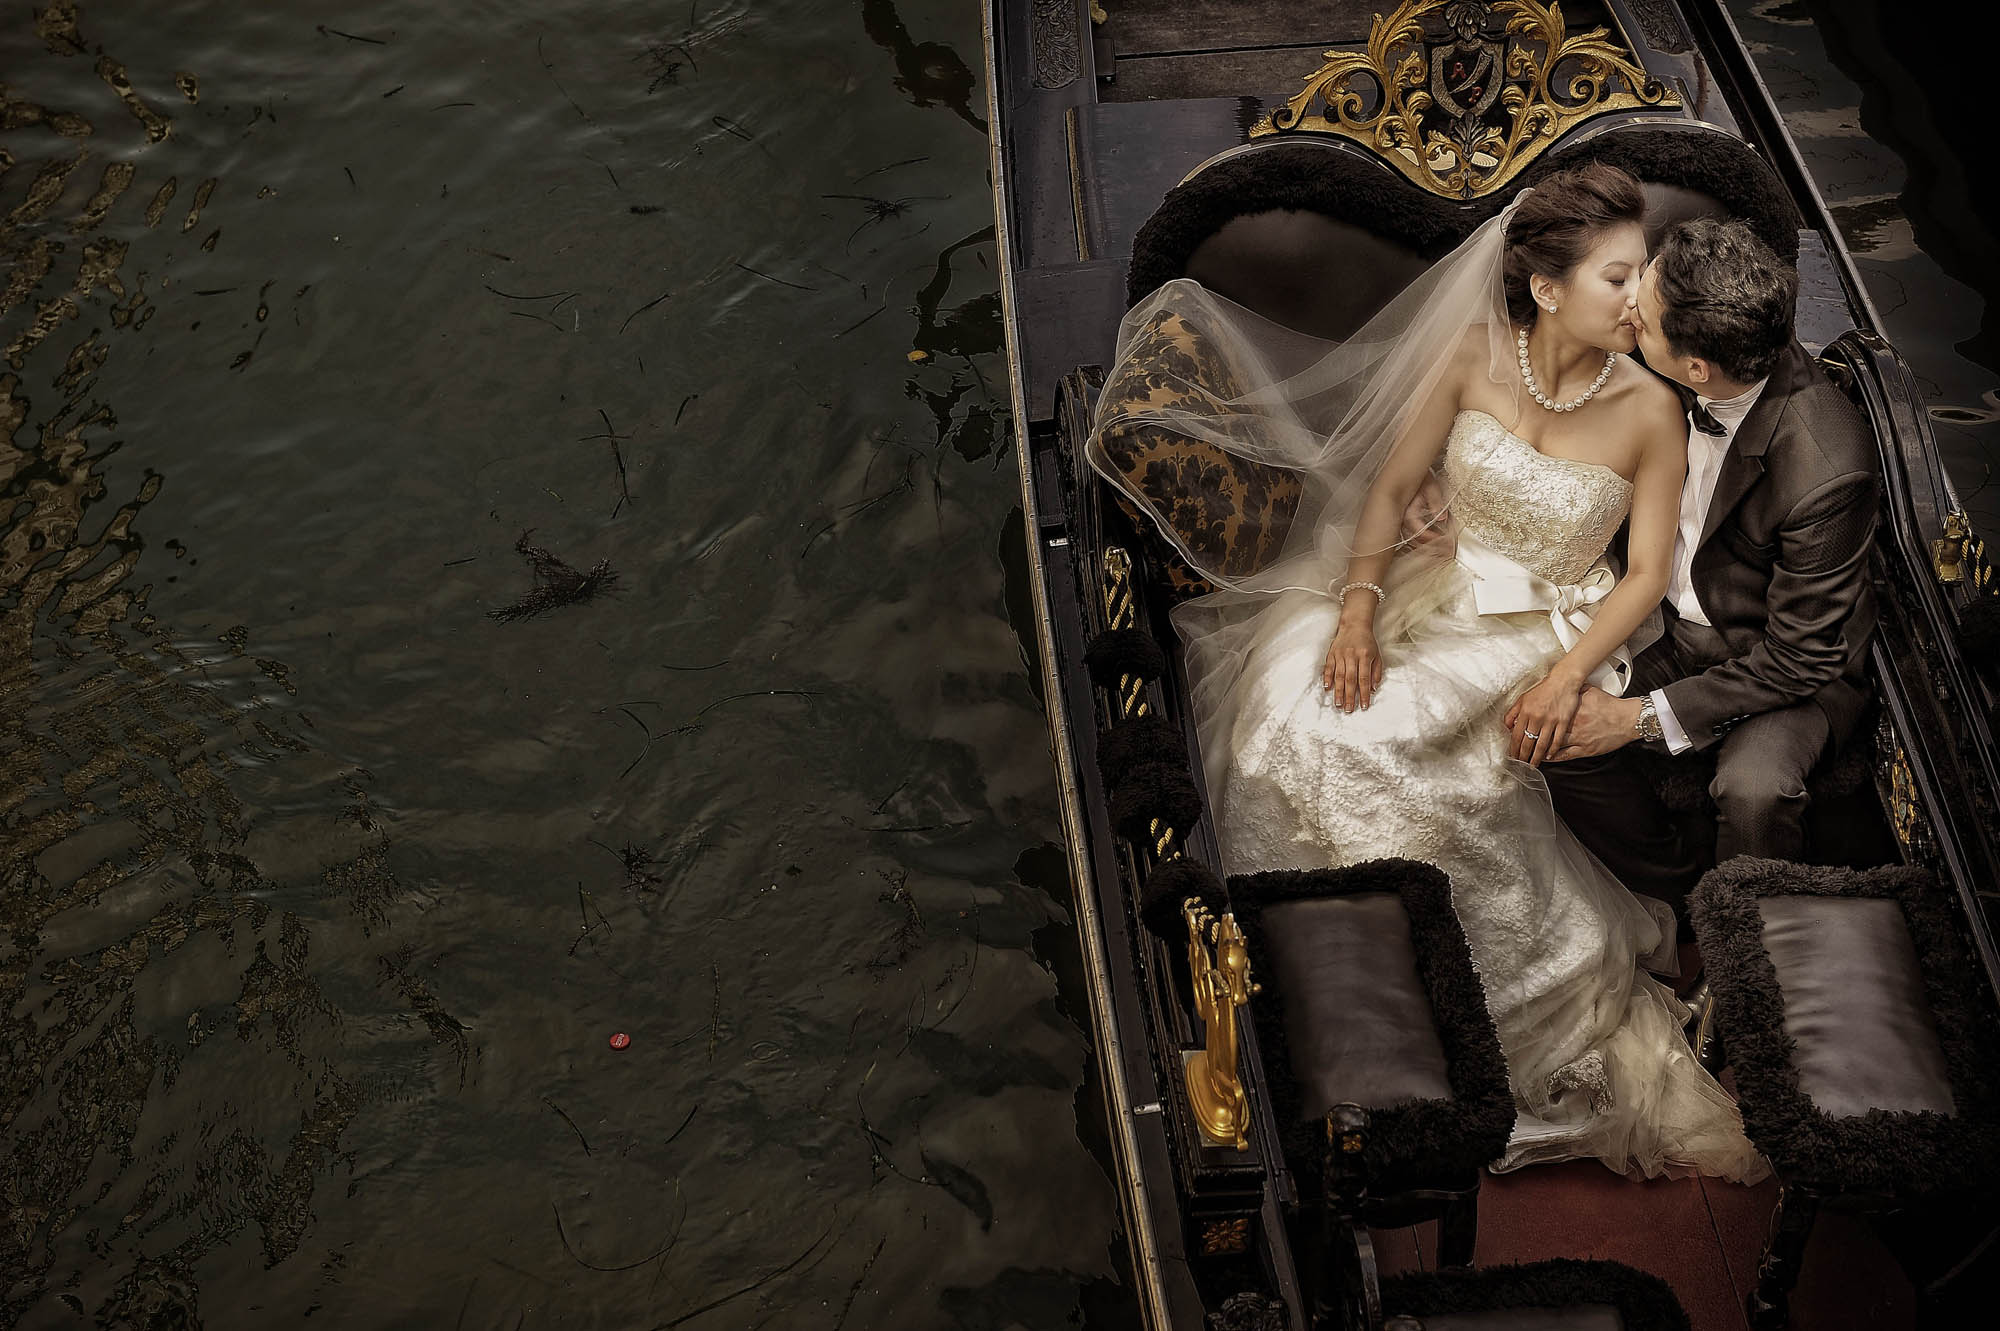 Bride and groom kissing in gondola, by CM Leung